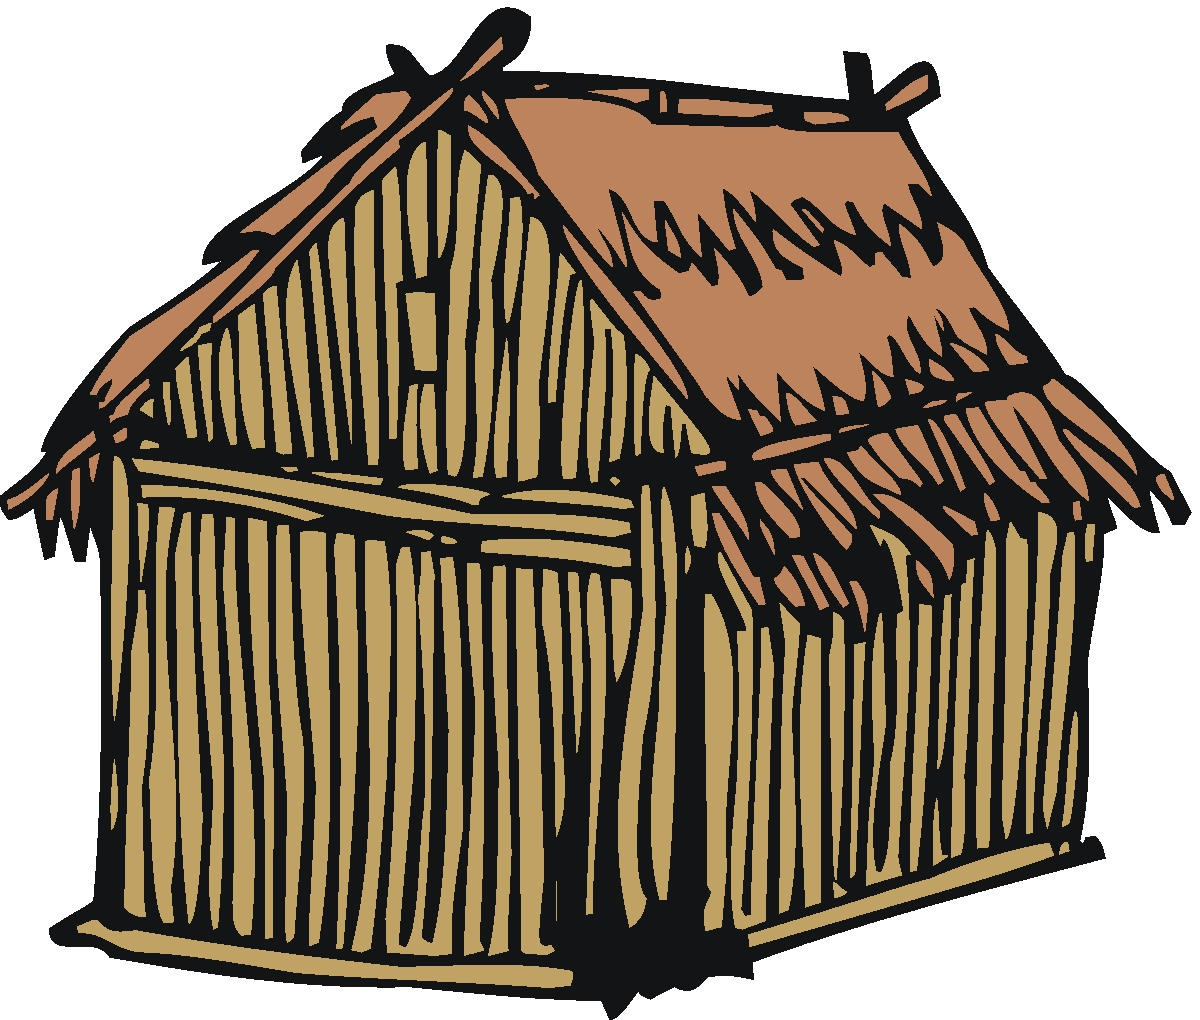 Free Peasant House Cliparts, Download Free Clip Art, Free.